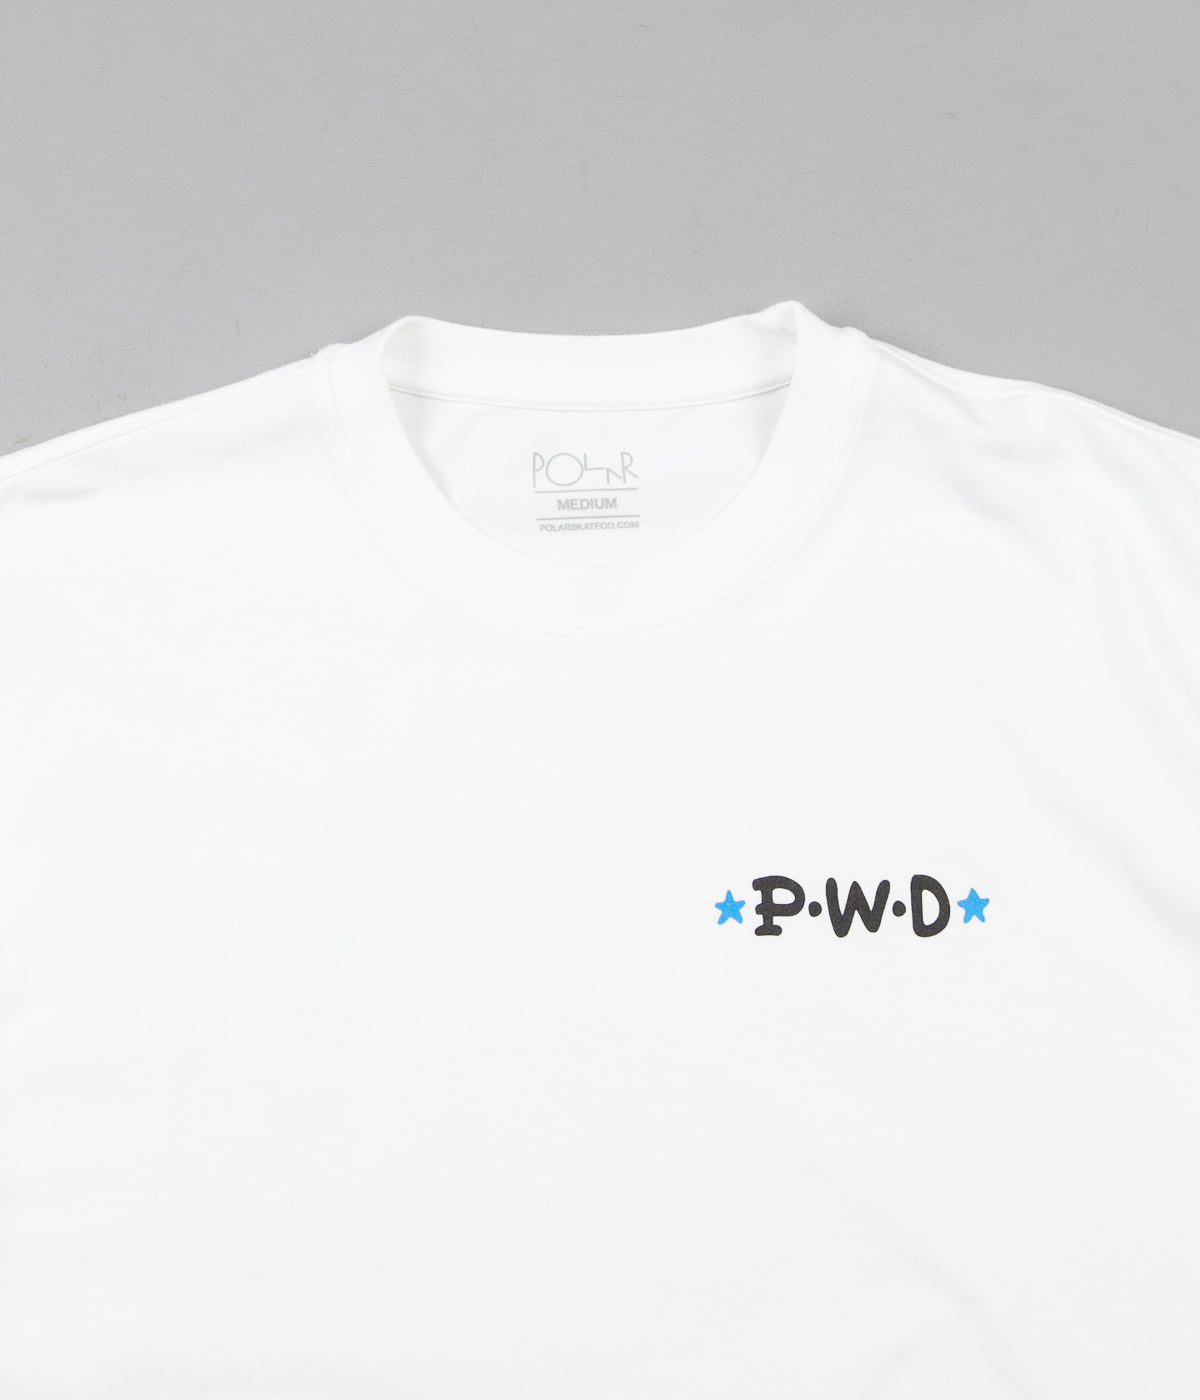 Polar P.W.D T-Shirt - White